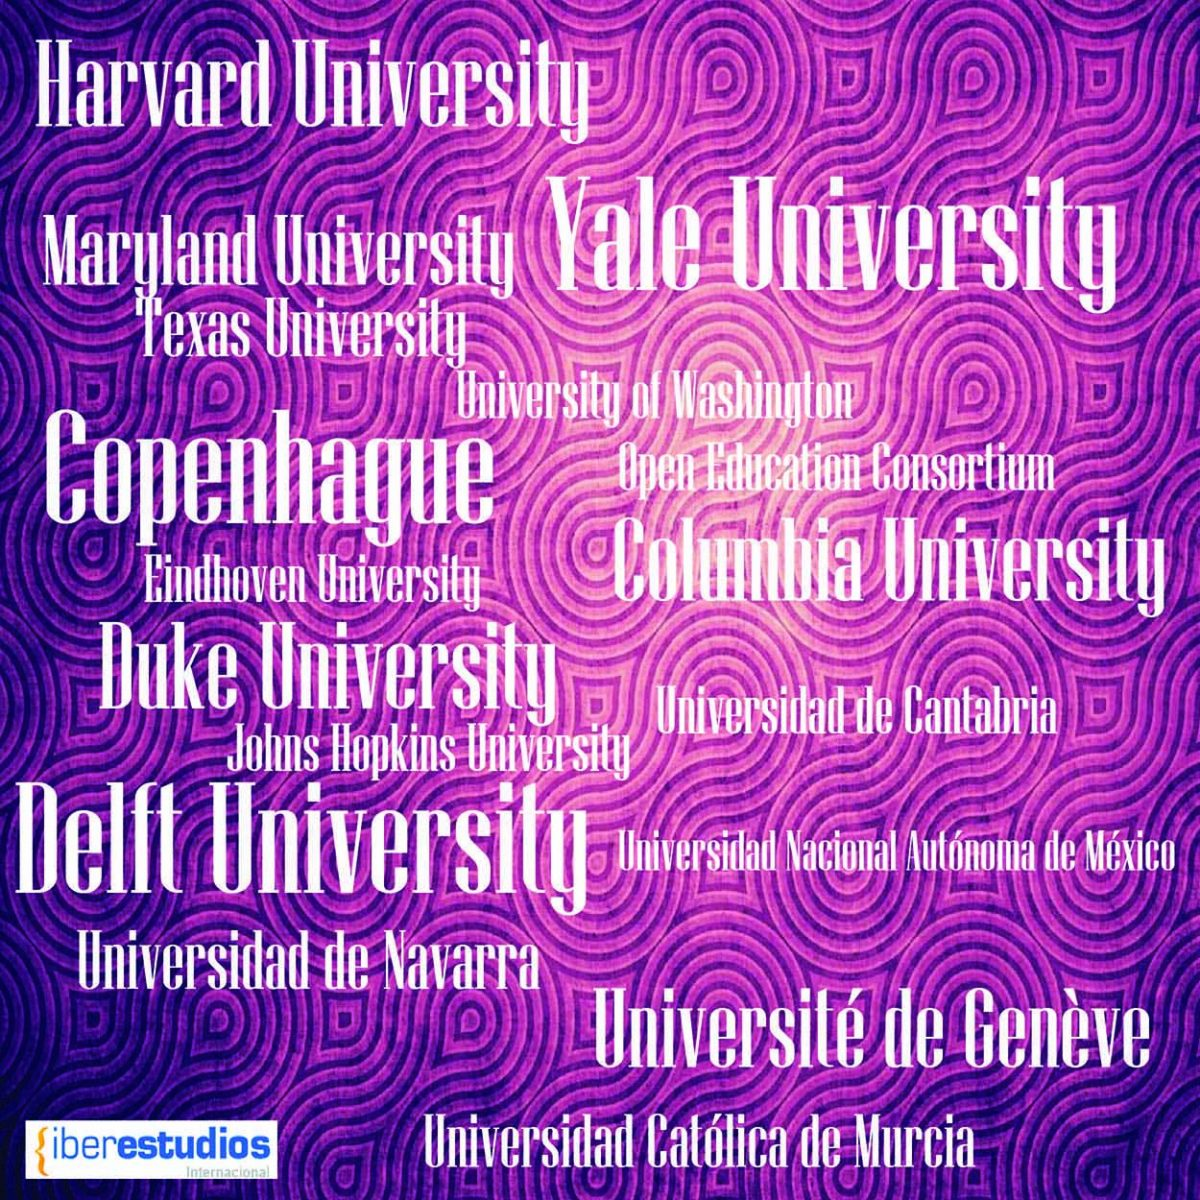 Universidades Iberestudios